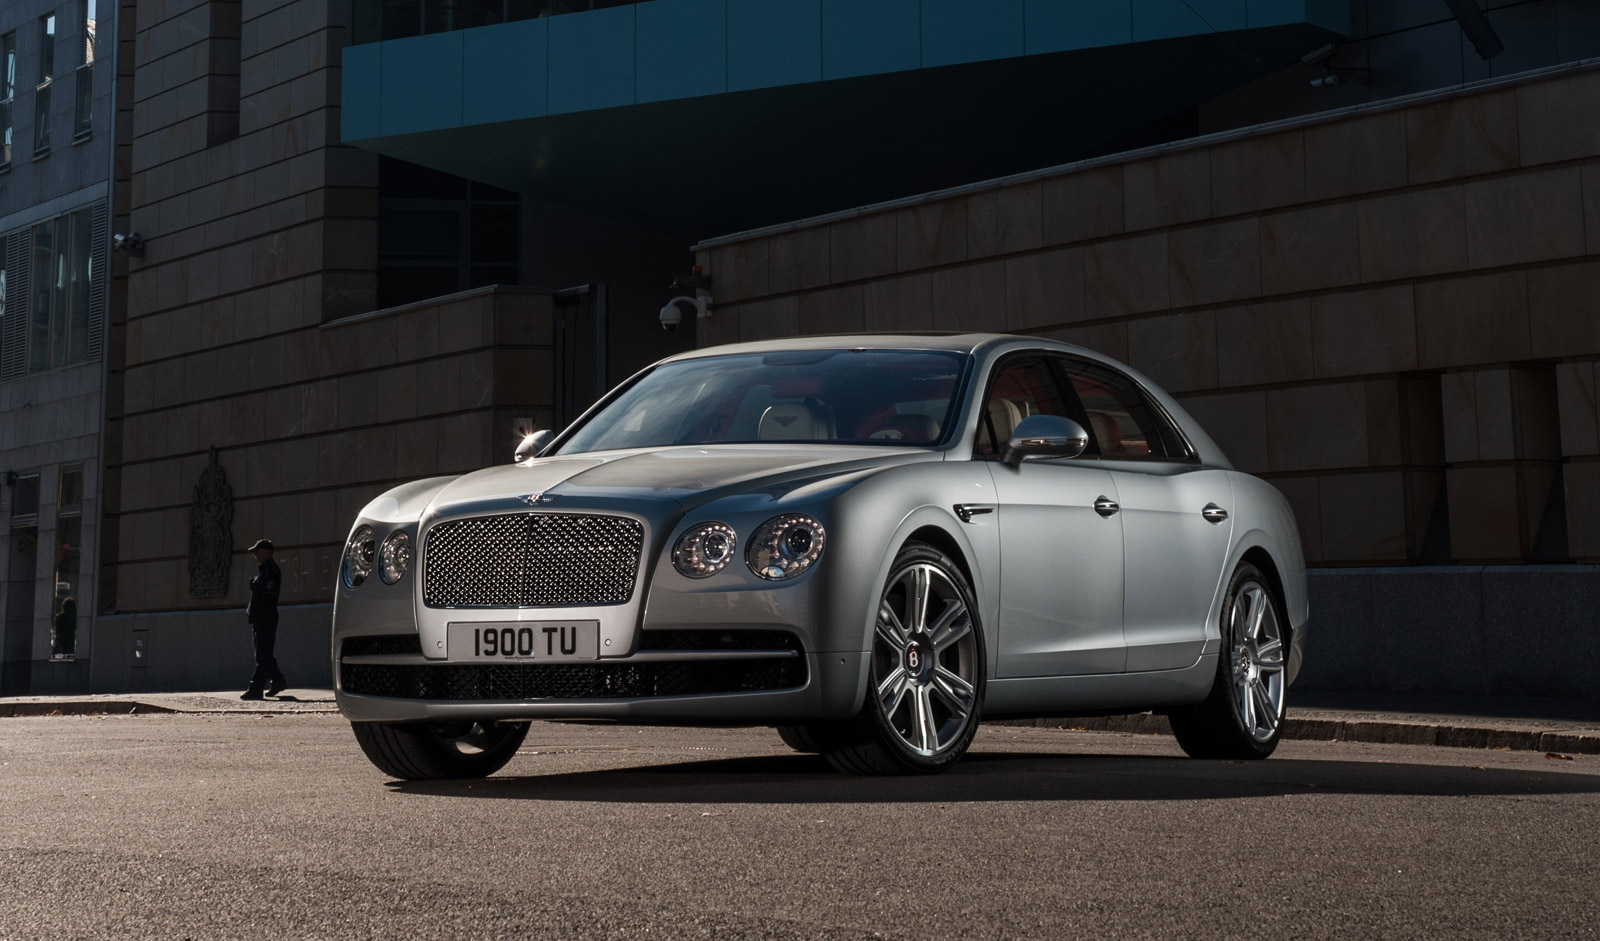 2015 Bentley Flying Spur Review, Ratings, Specs, Prices, and Photos - The Car Connection